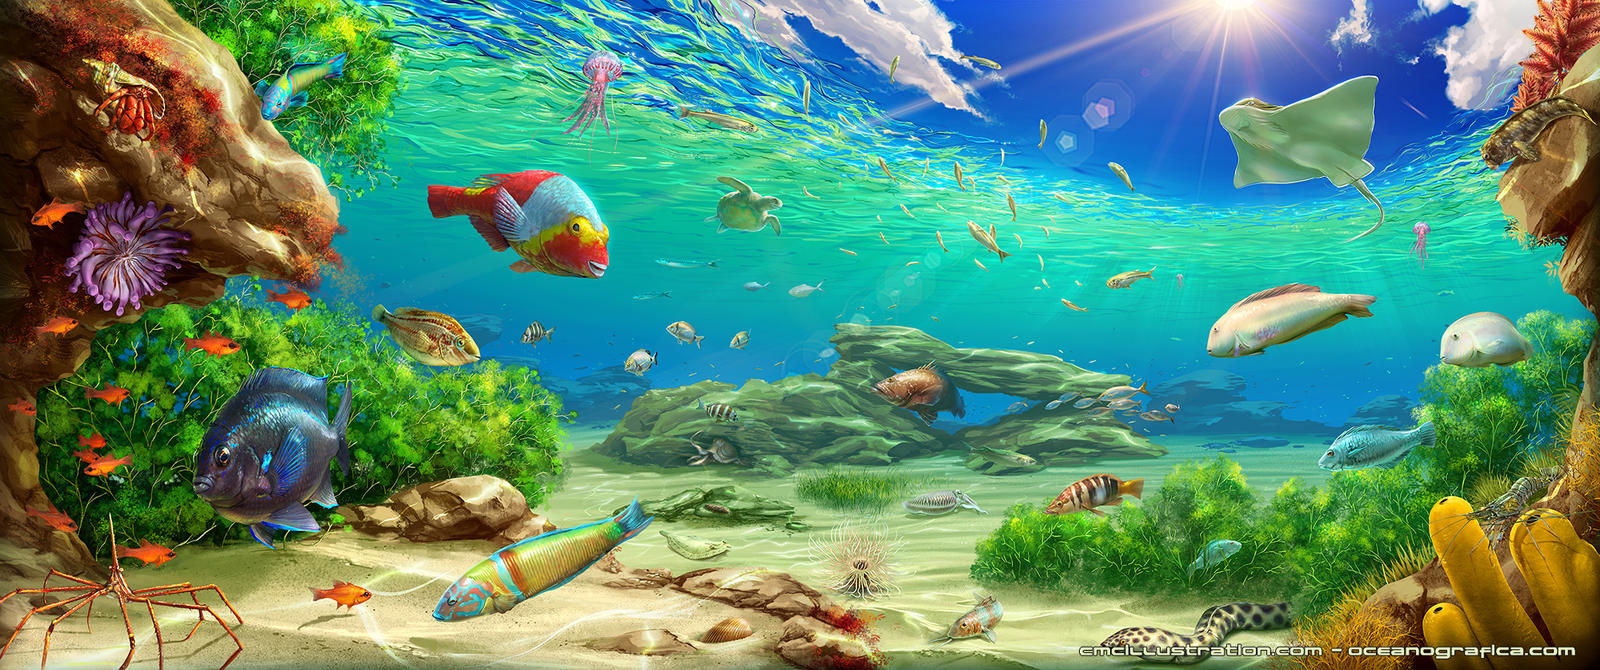 Underwater painting by aioras on deviantart for Fish scenery drawing